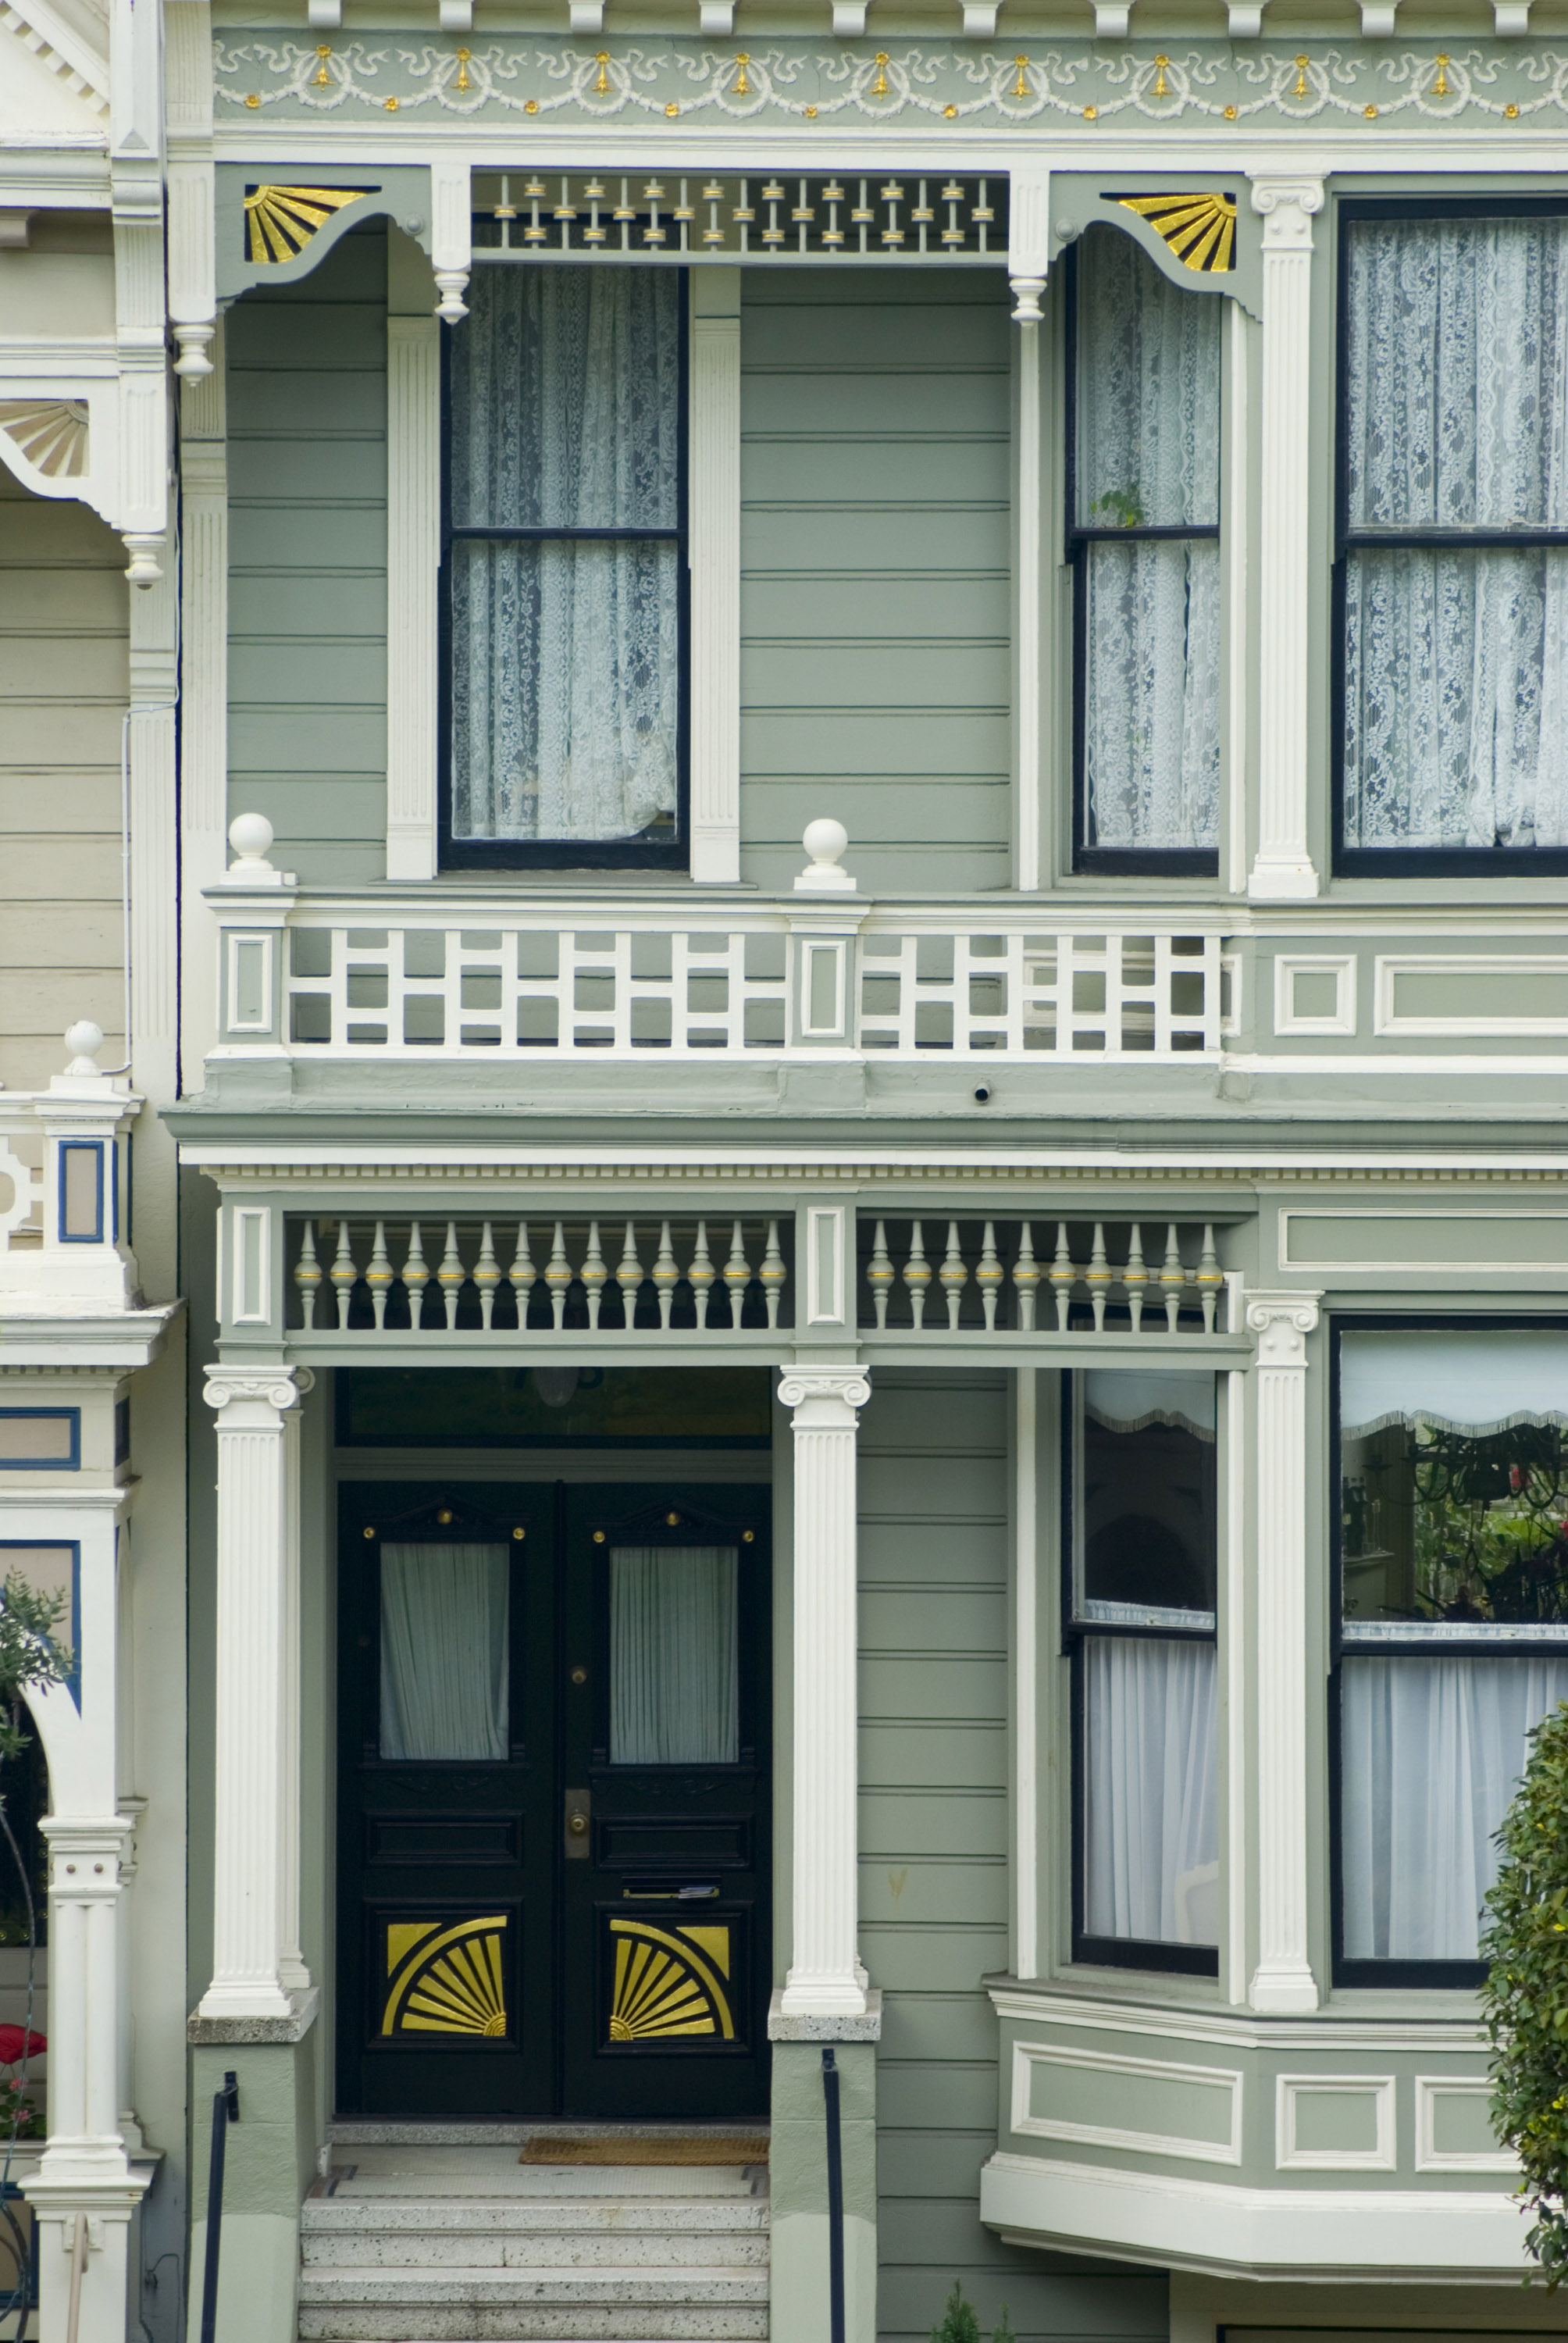 Free Stock Photo 5560 historic house fronts | freeimageslive